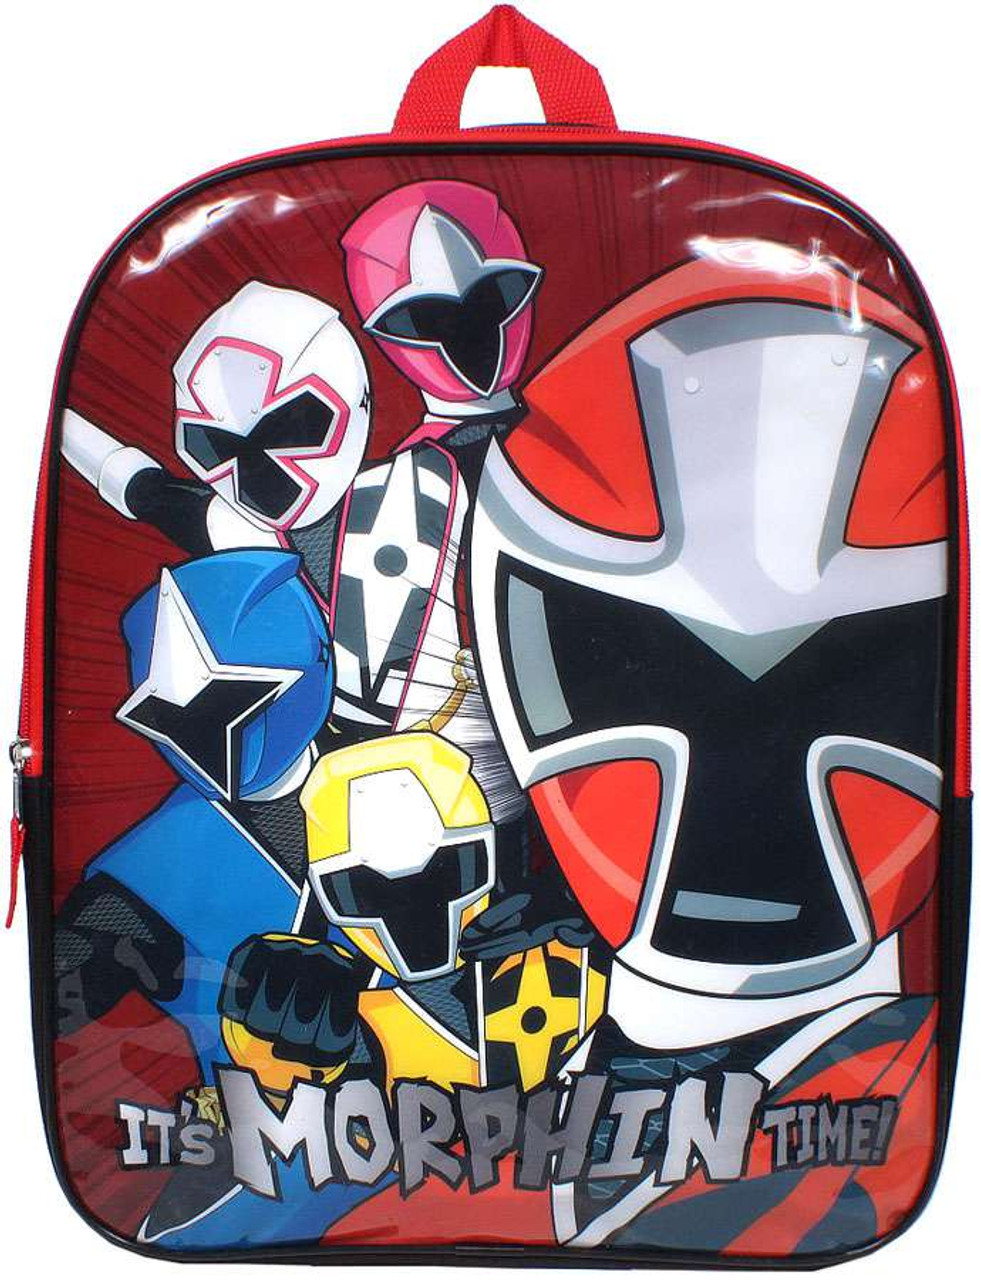 eb9b76698421df Power Rangers Its Morphin Time Backpack Accessory Innovations - ToyWiz